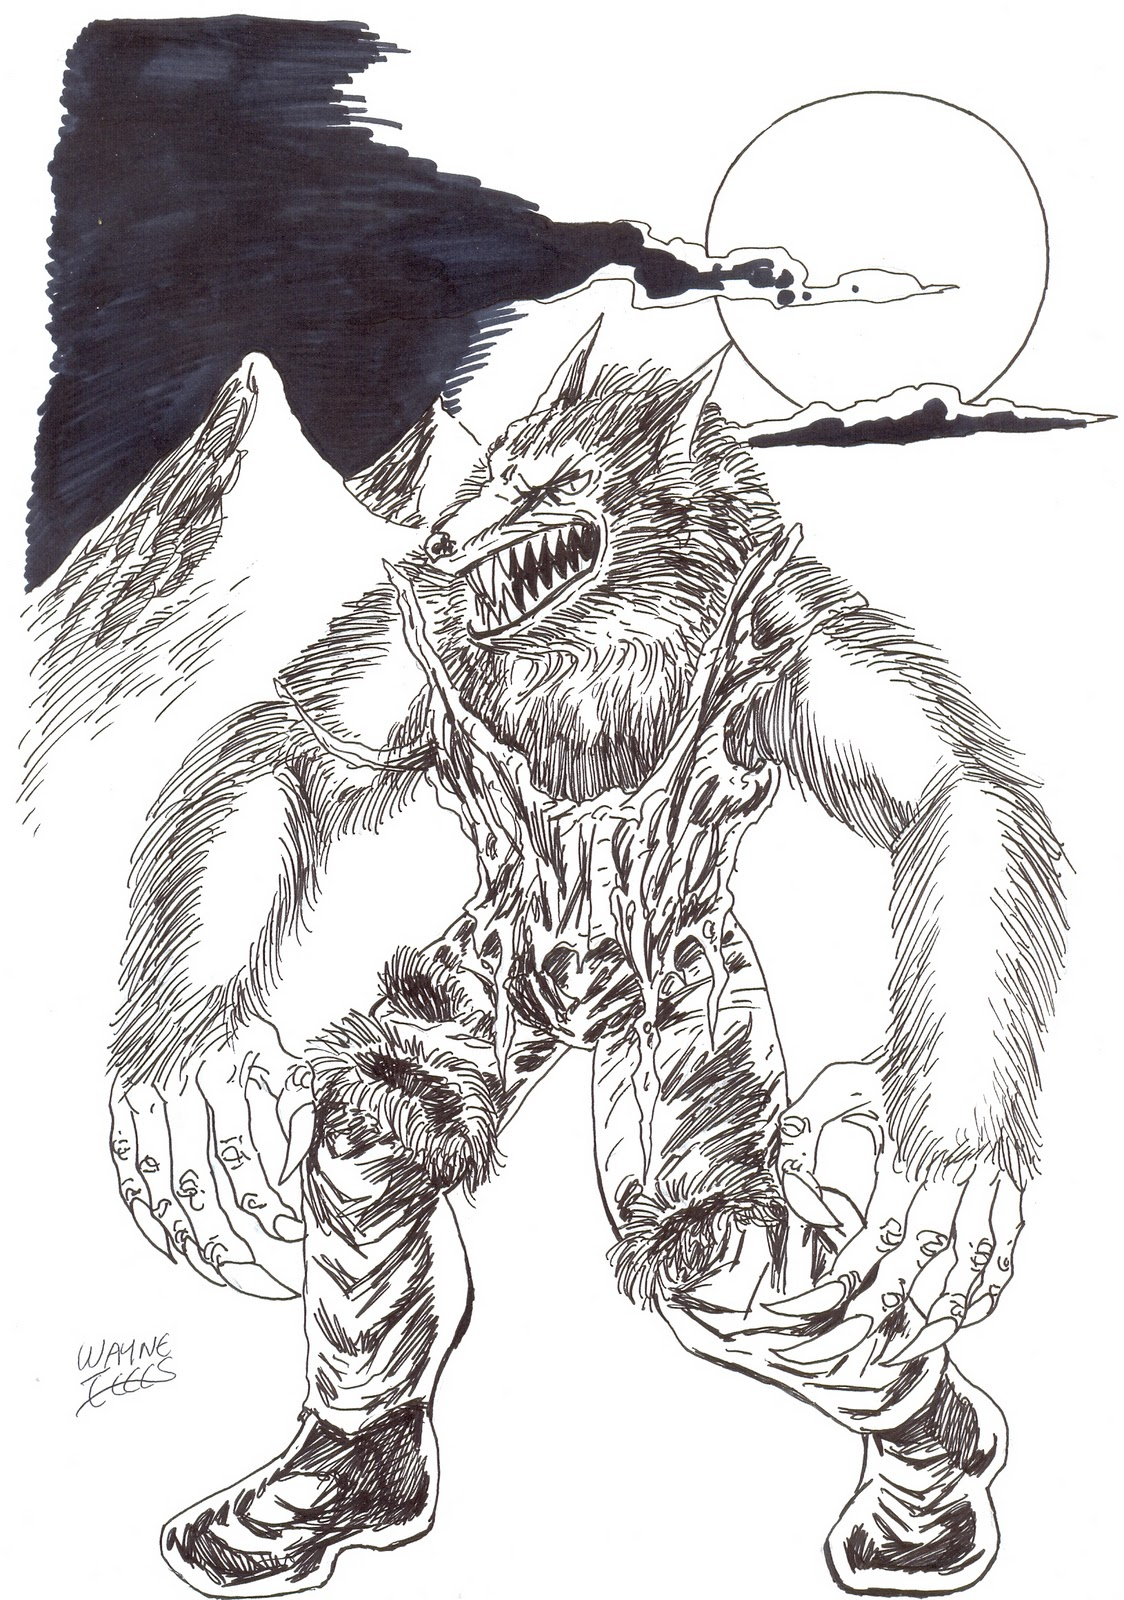 Uncategorized How To Draw A Werewolf Step By Step wayne tully fantasy art how to draw a werewolf drawing tutorial